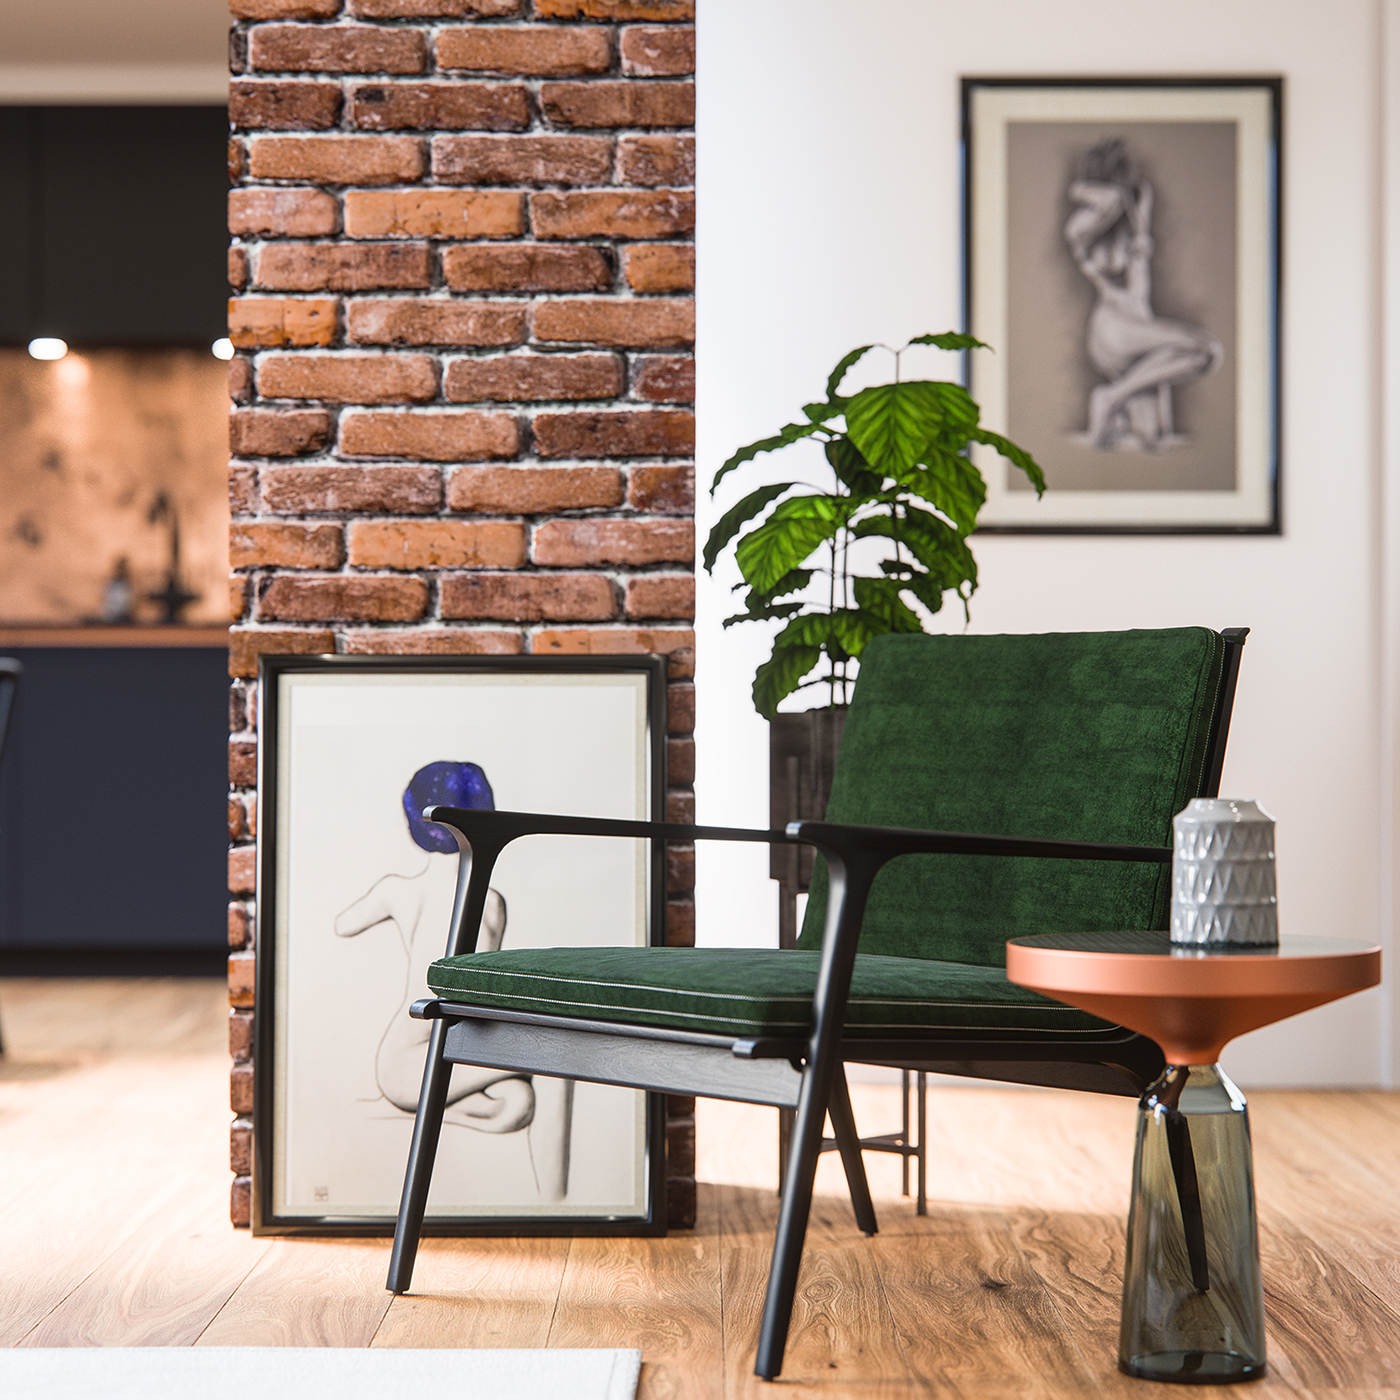 7 Old Town Clapham The Metalworks On Behance